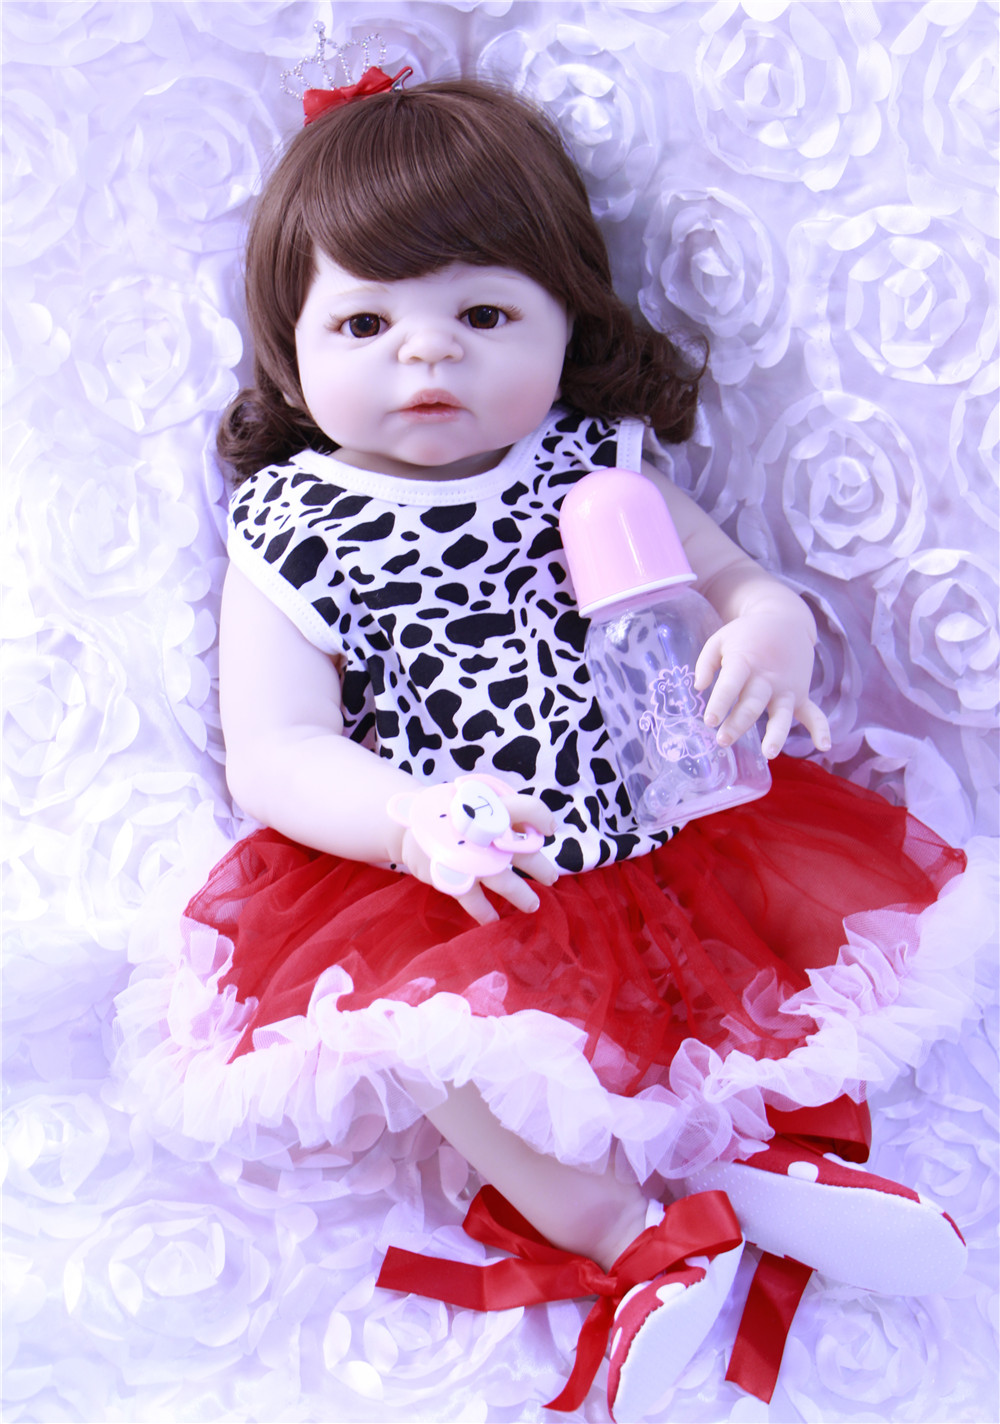 Bebe princess reborn 23 full silicone dolls reborn babies alive bonecas curly hair wig can bathe bonecas reborn toy dollsBebe princess reborn 23 full silicone dolls reborn babies alive bonecas curly hair wig can bathe bonecas reborn toy dolls